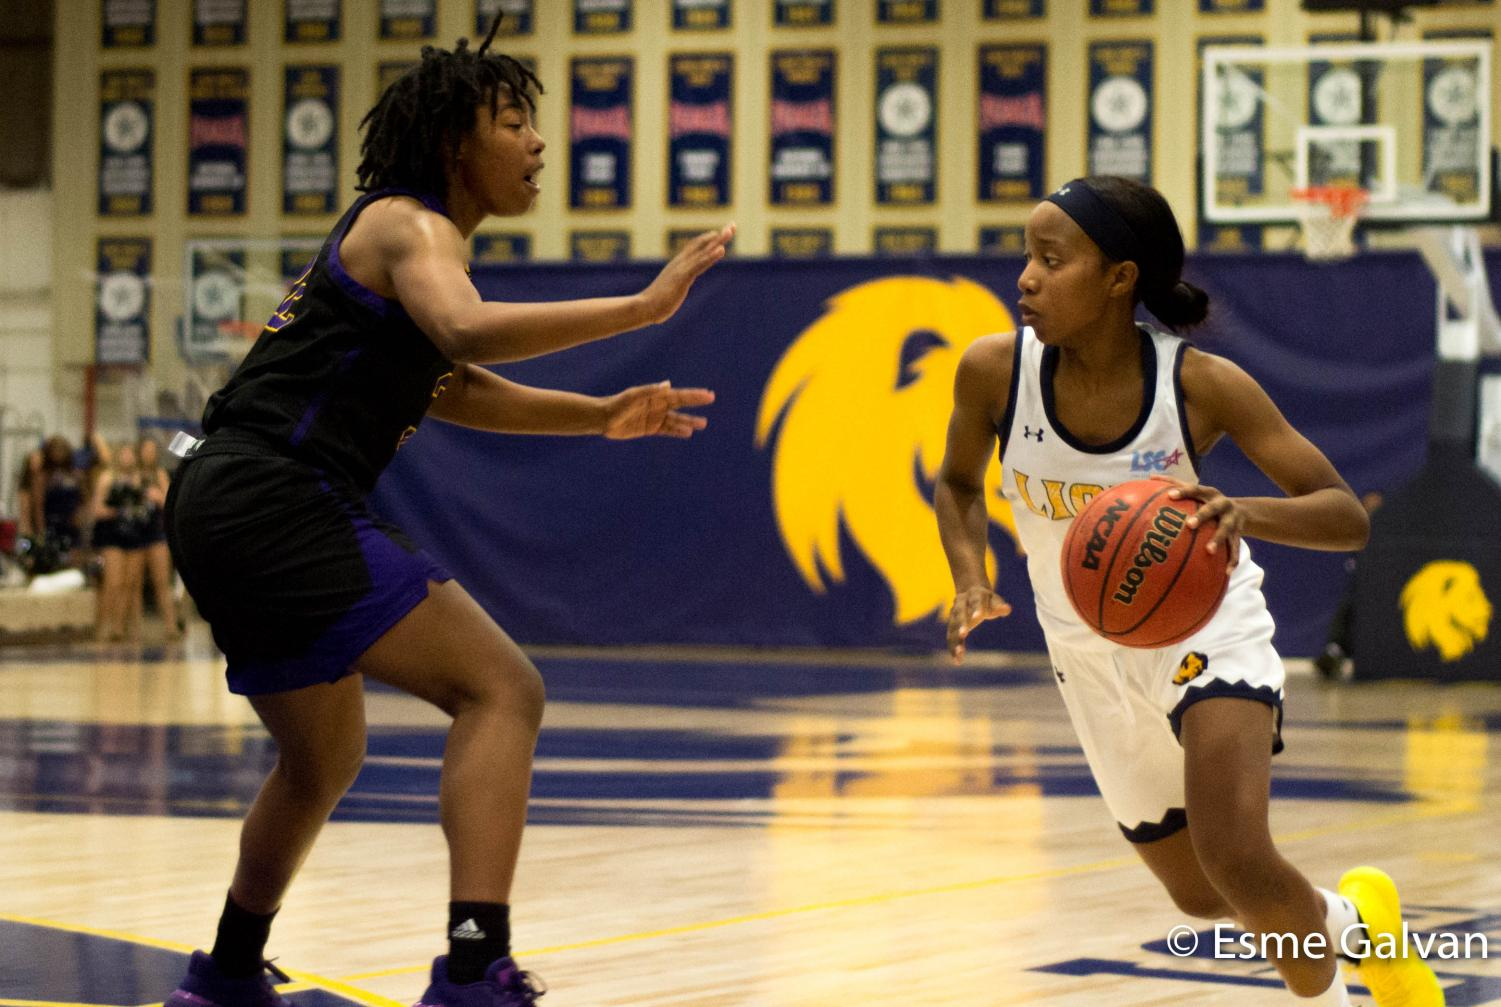 Chania Wright (right) dribbles past Jakyya Clay of the Ouachita Baptist Tigers